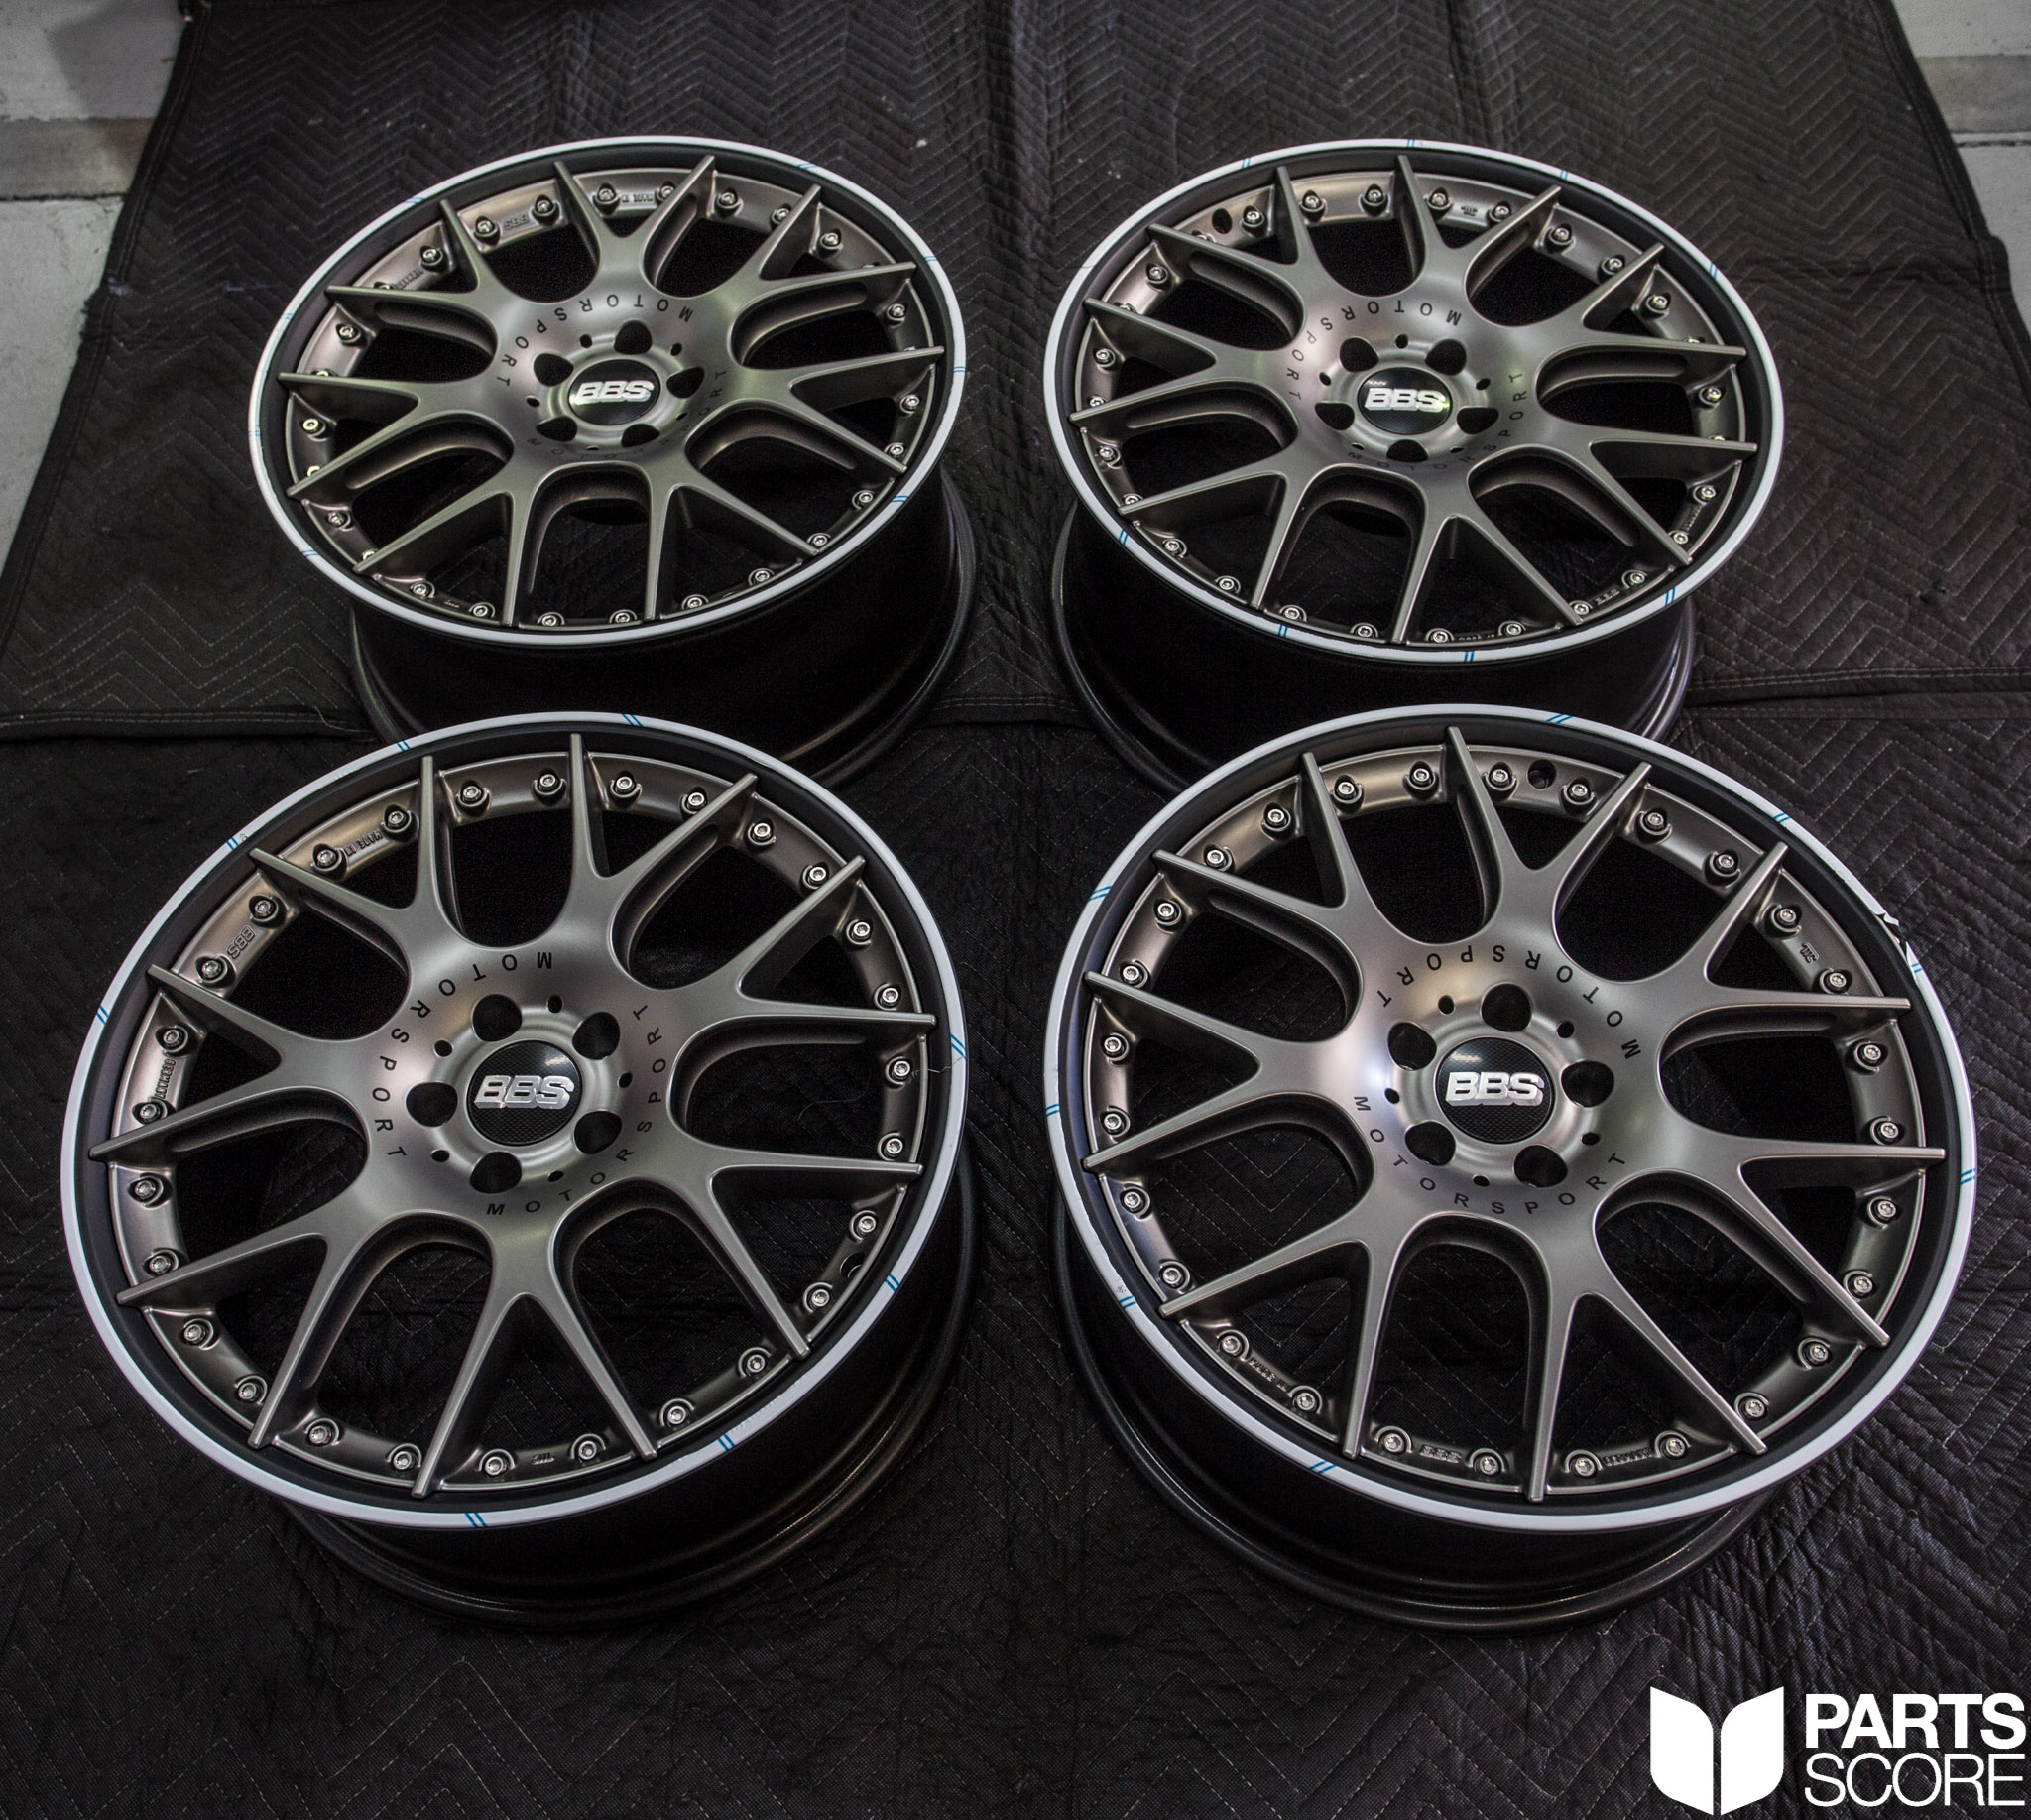 audi-b9-s4-20-bbs-chr-ii-wheels-installed-parts-score